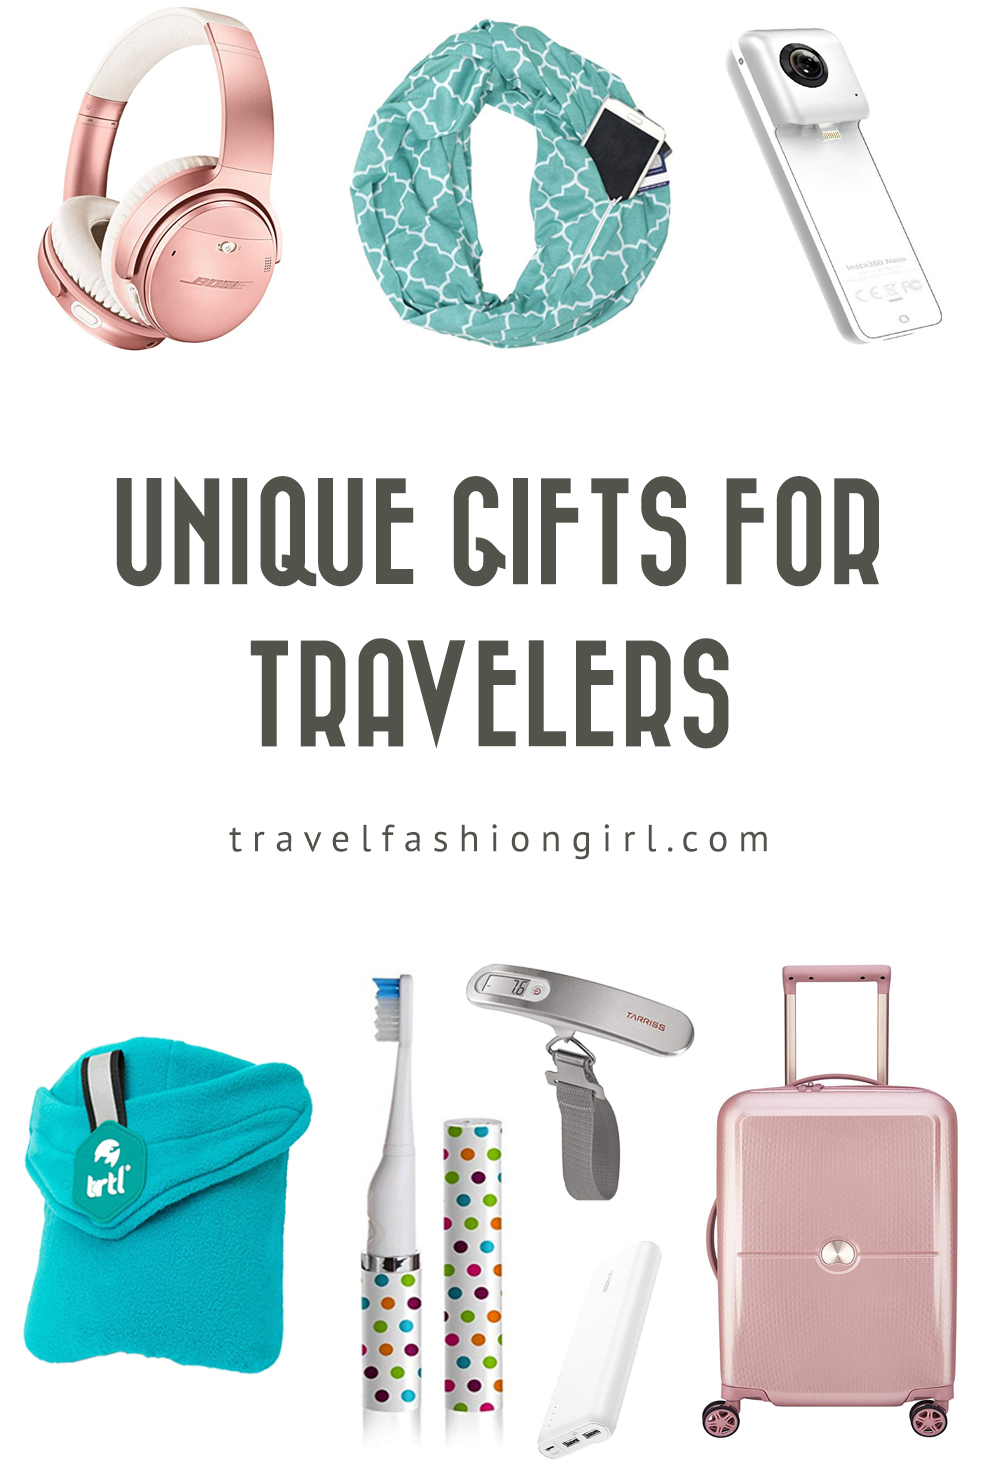 unique-gifts-for-travelers